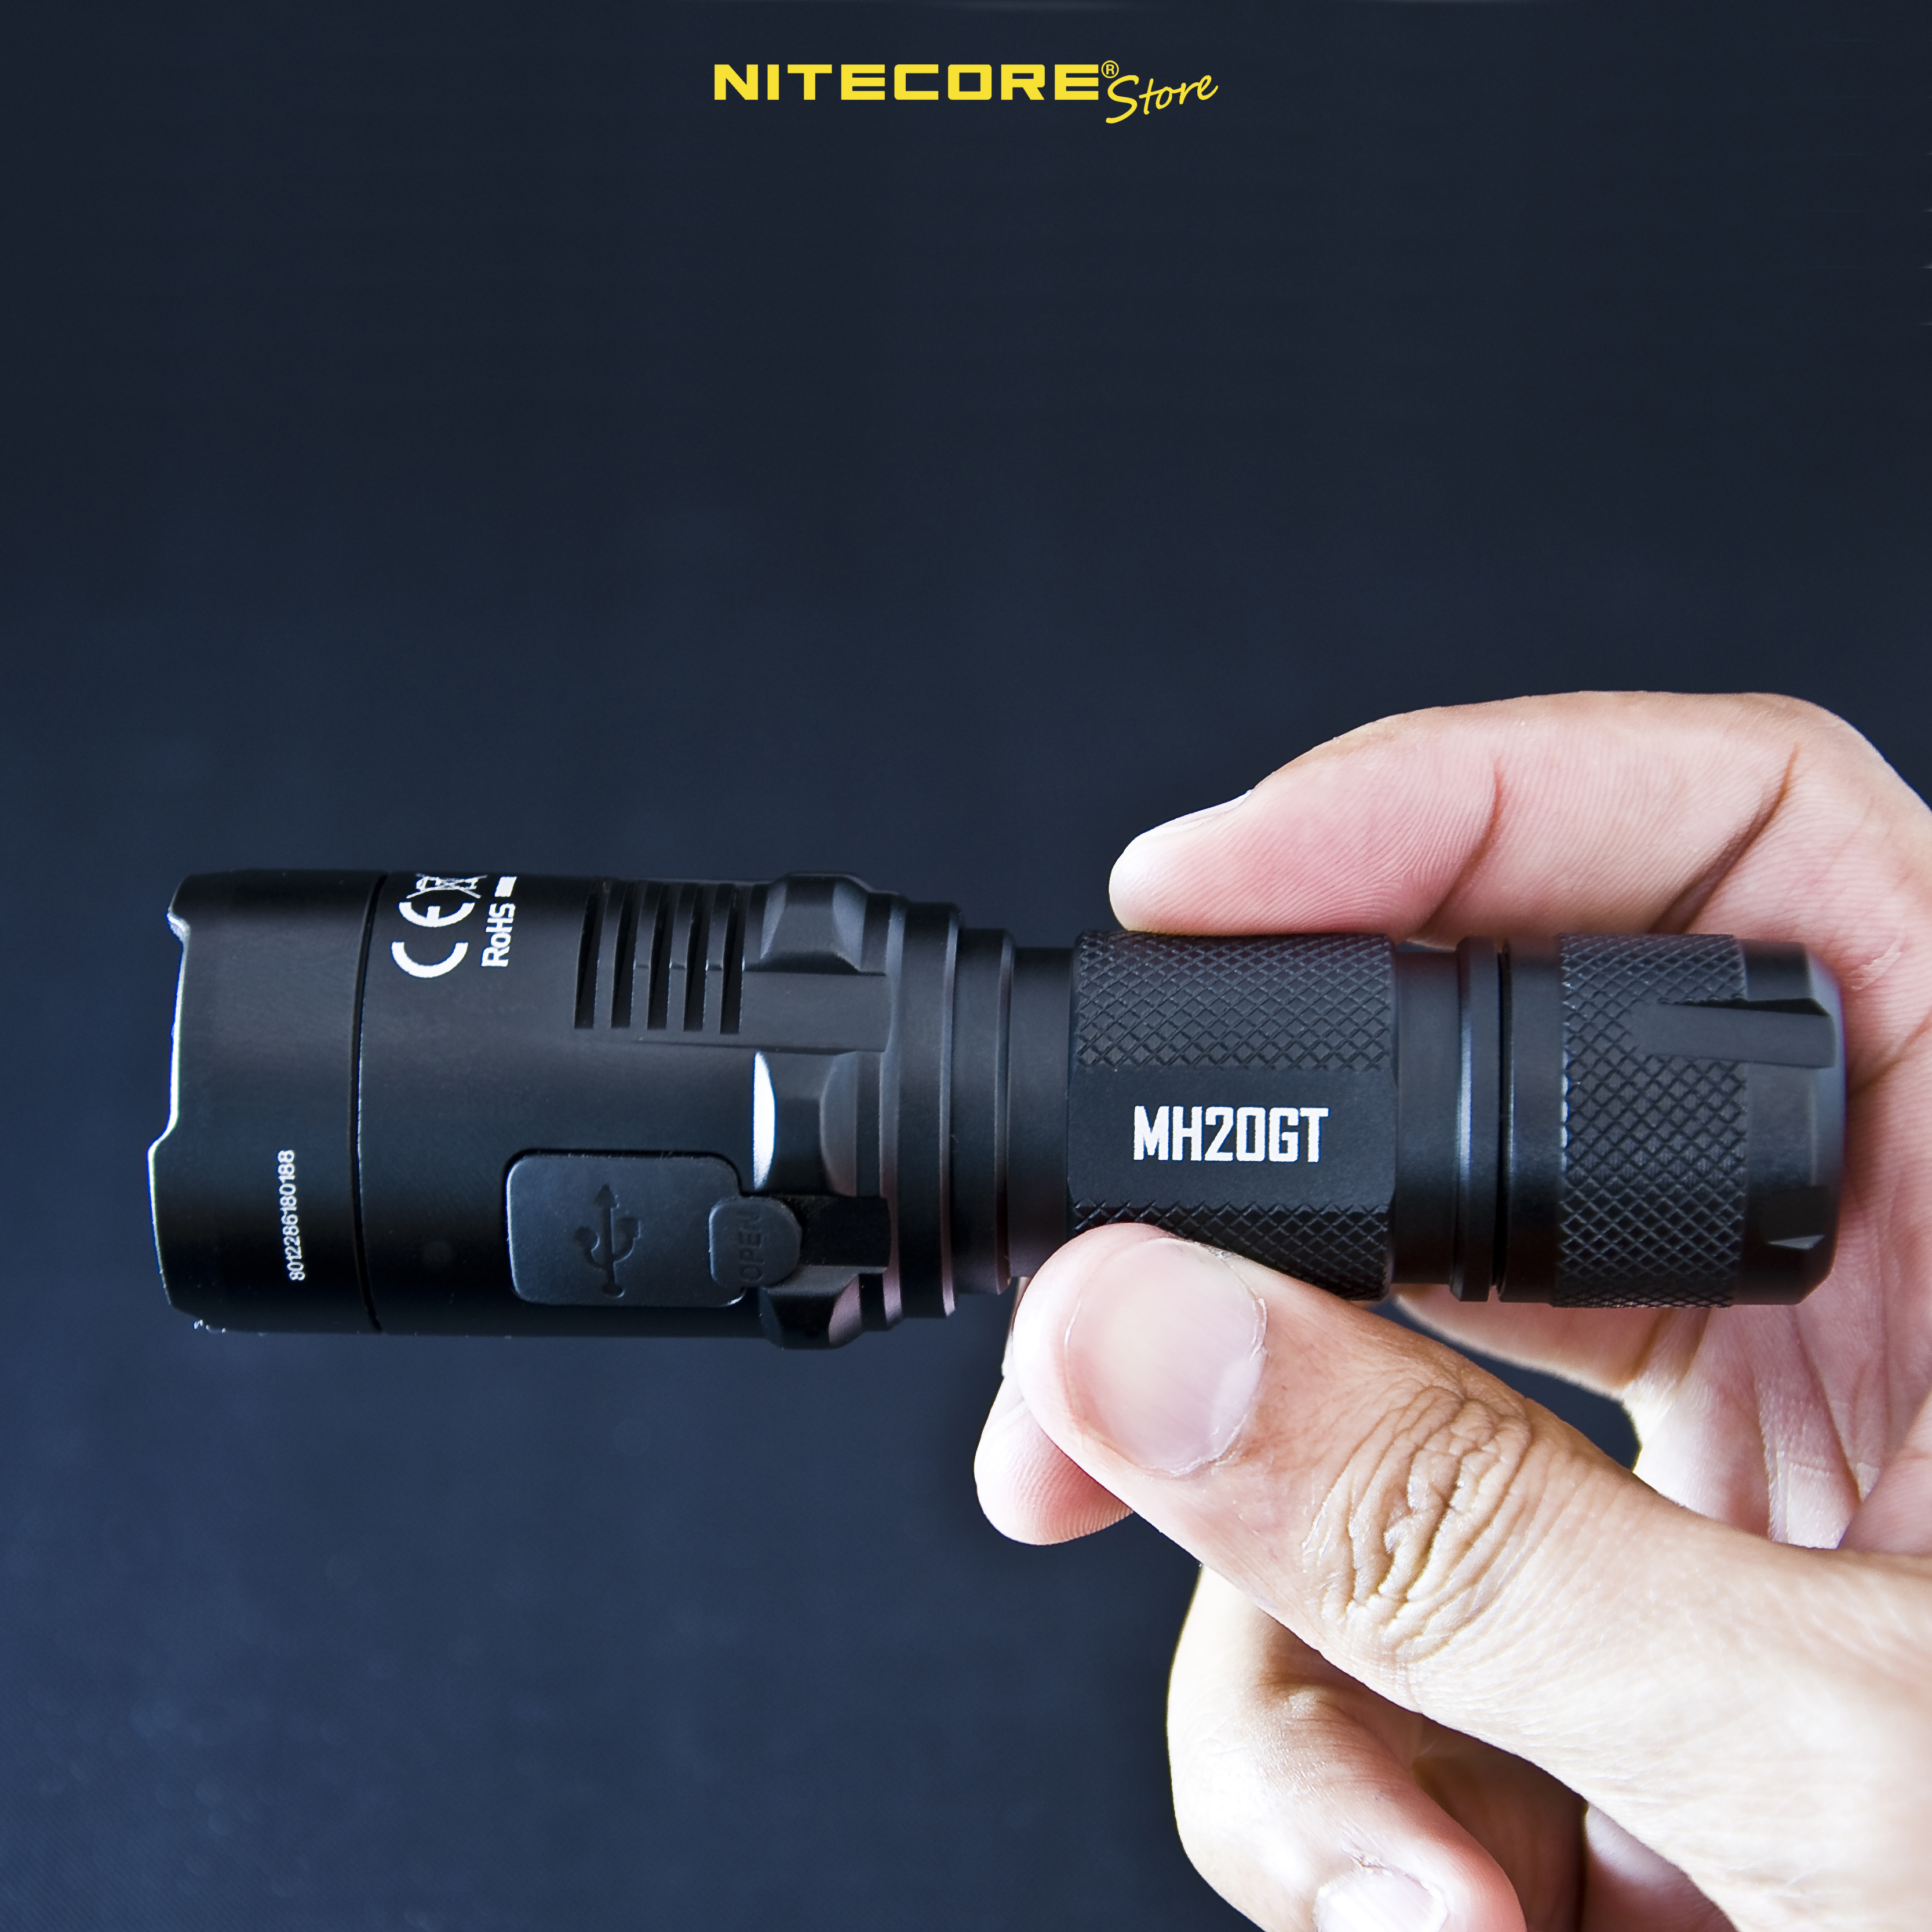 best lightweight flashlights, pocket flashlight, nitecore mh20gt